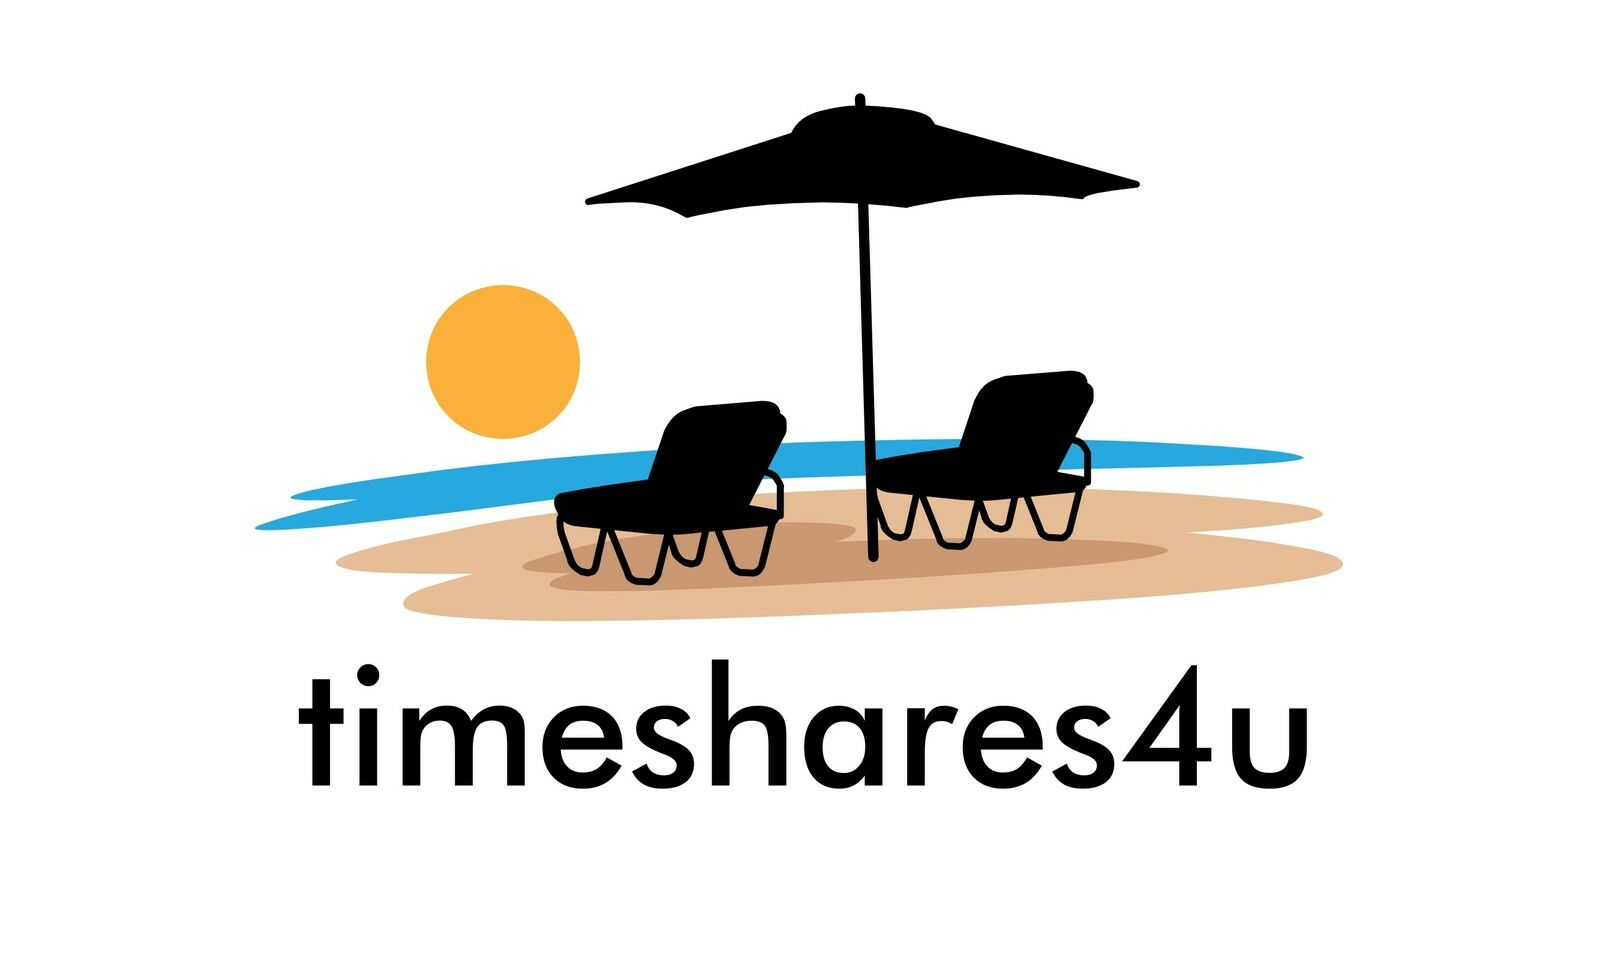 PLANTATION RESORT VILLAS TIMESHARE 2B/2B 300 FLOAT USE ANNUAL SURFSIDE BEACH SC - $0.99